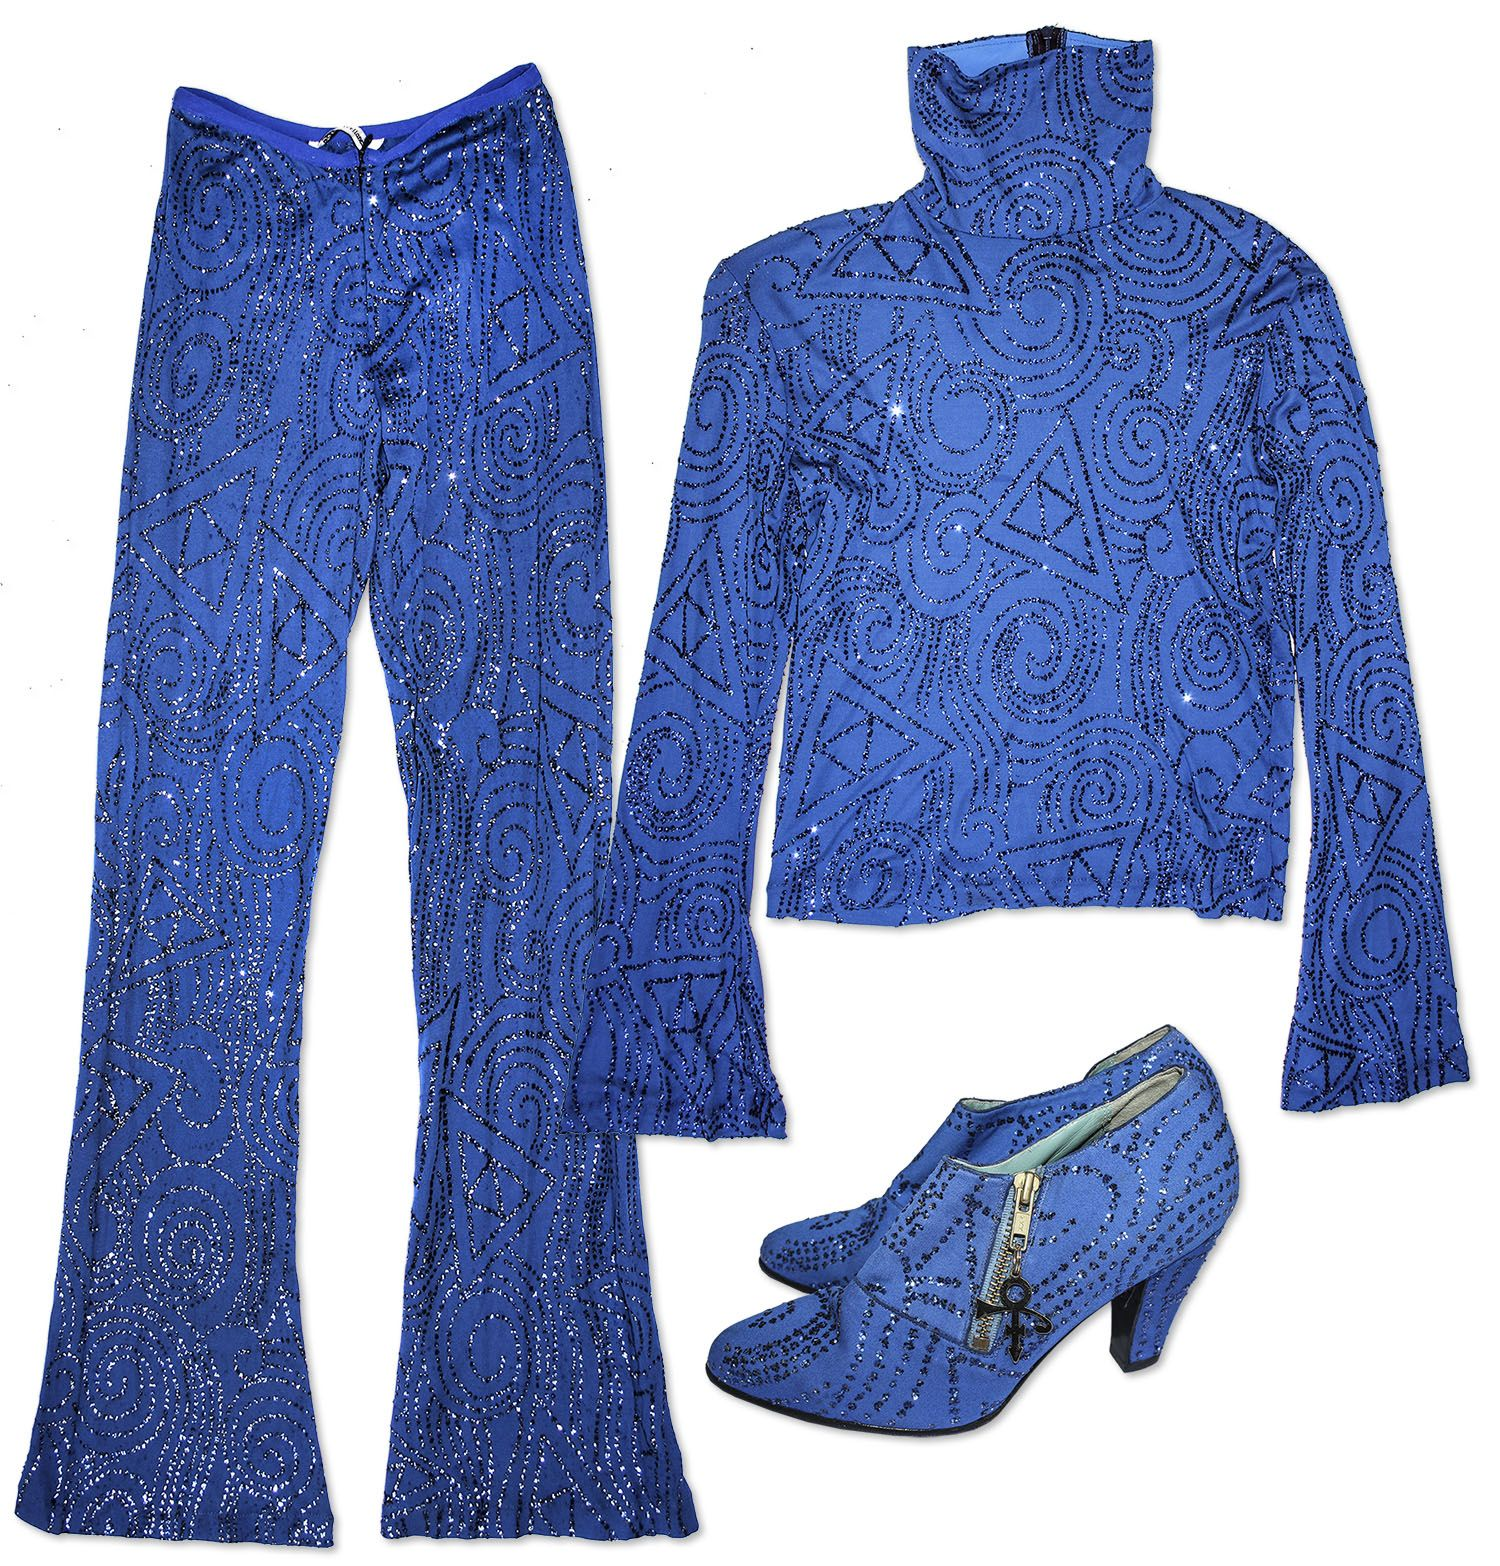 Prince worn blue ensemble. Custom-made stage costume features ...